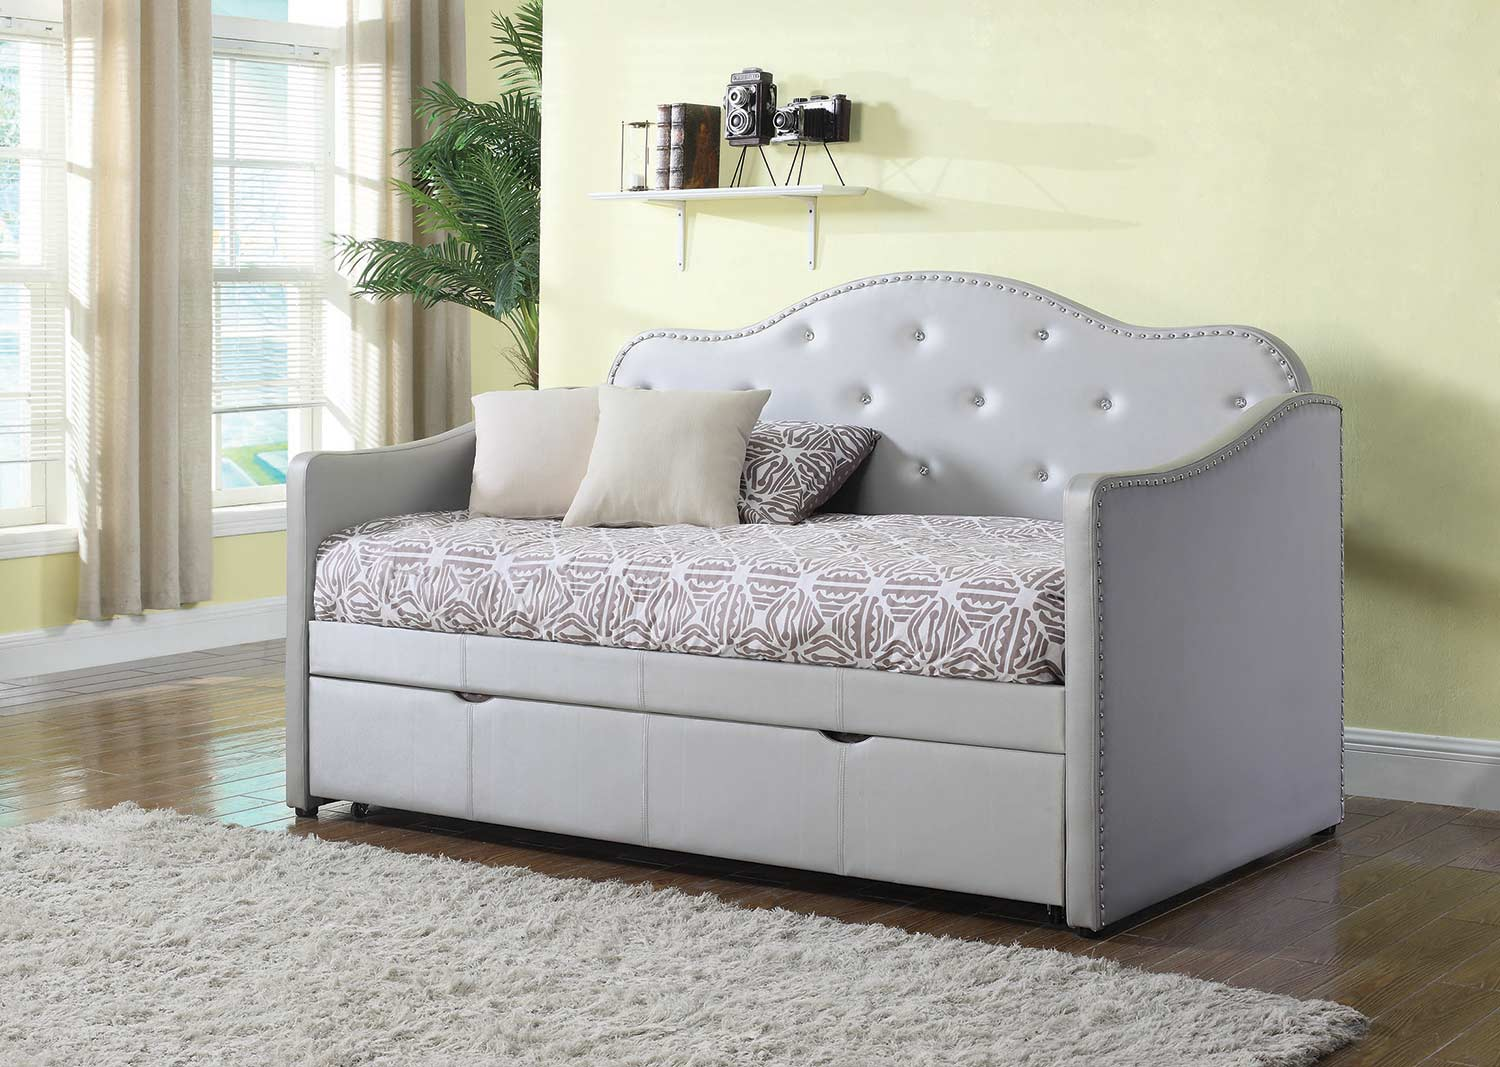 Coaster Dillane Button Tufted Upholstered Daybed with Trundle - Pearlescent Grey Leatherette